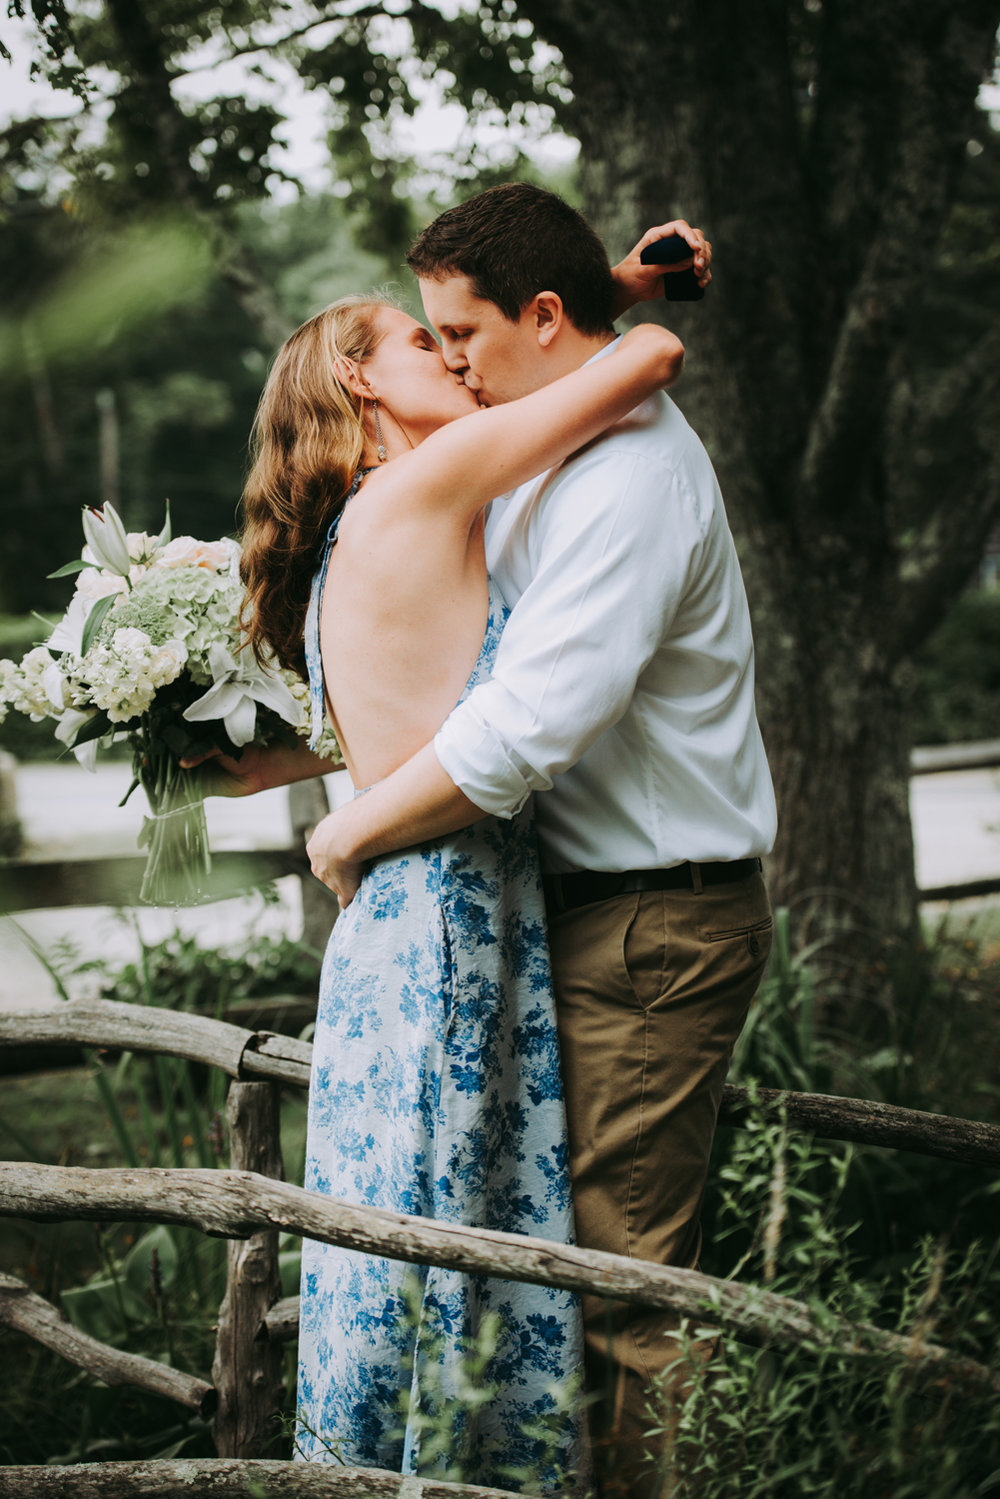 hilary_brian_engagement_kiss_marthas_vineyard-3623.jpg